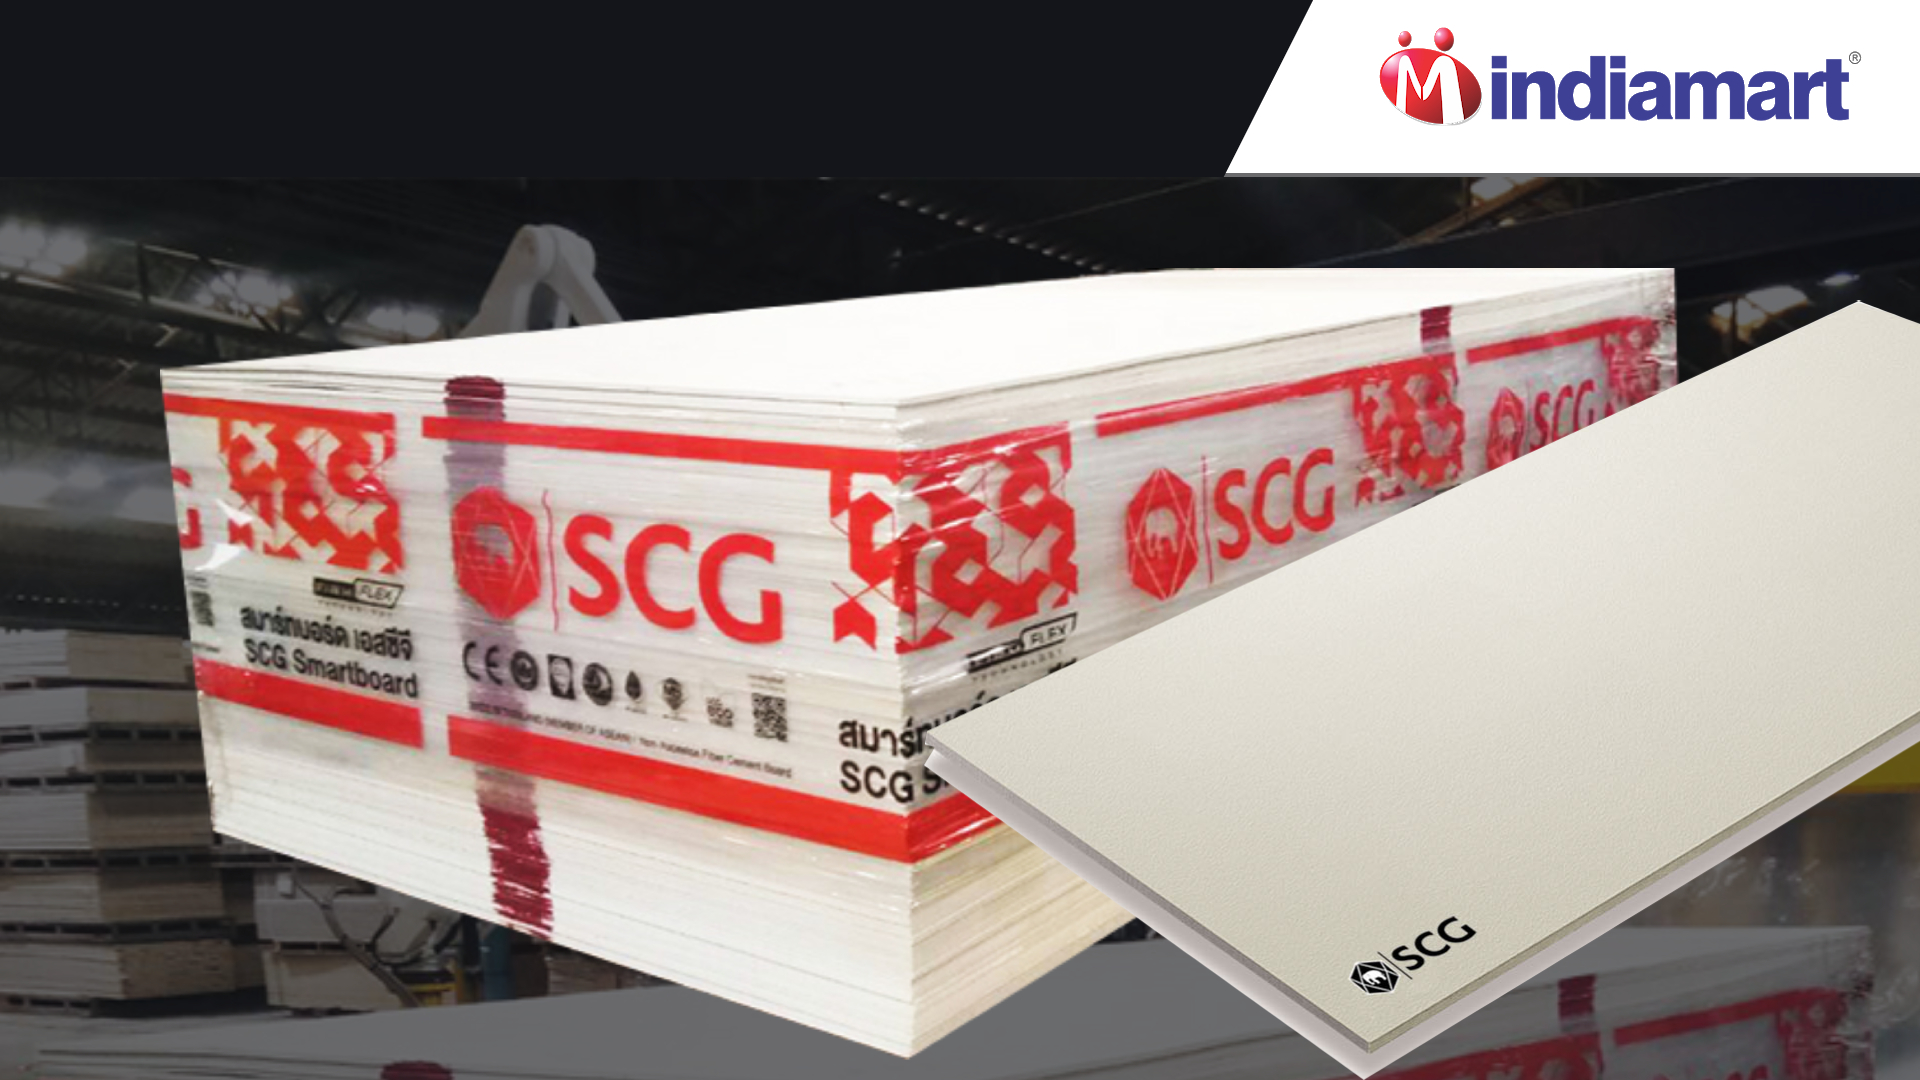 SCG Fiber Cement sheet Price in Indiamart